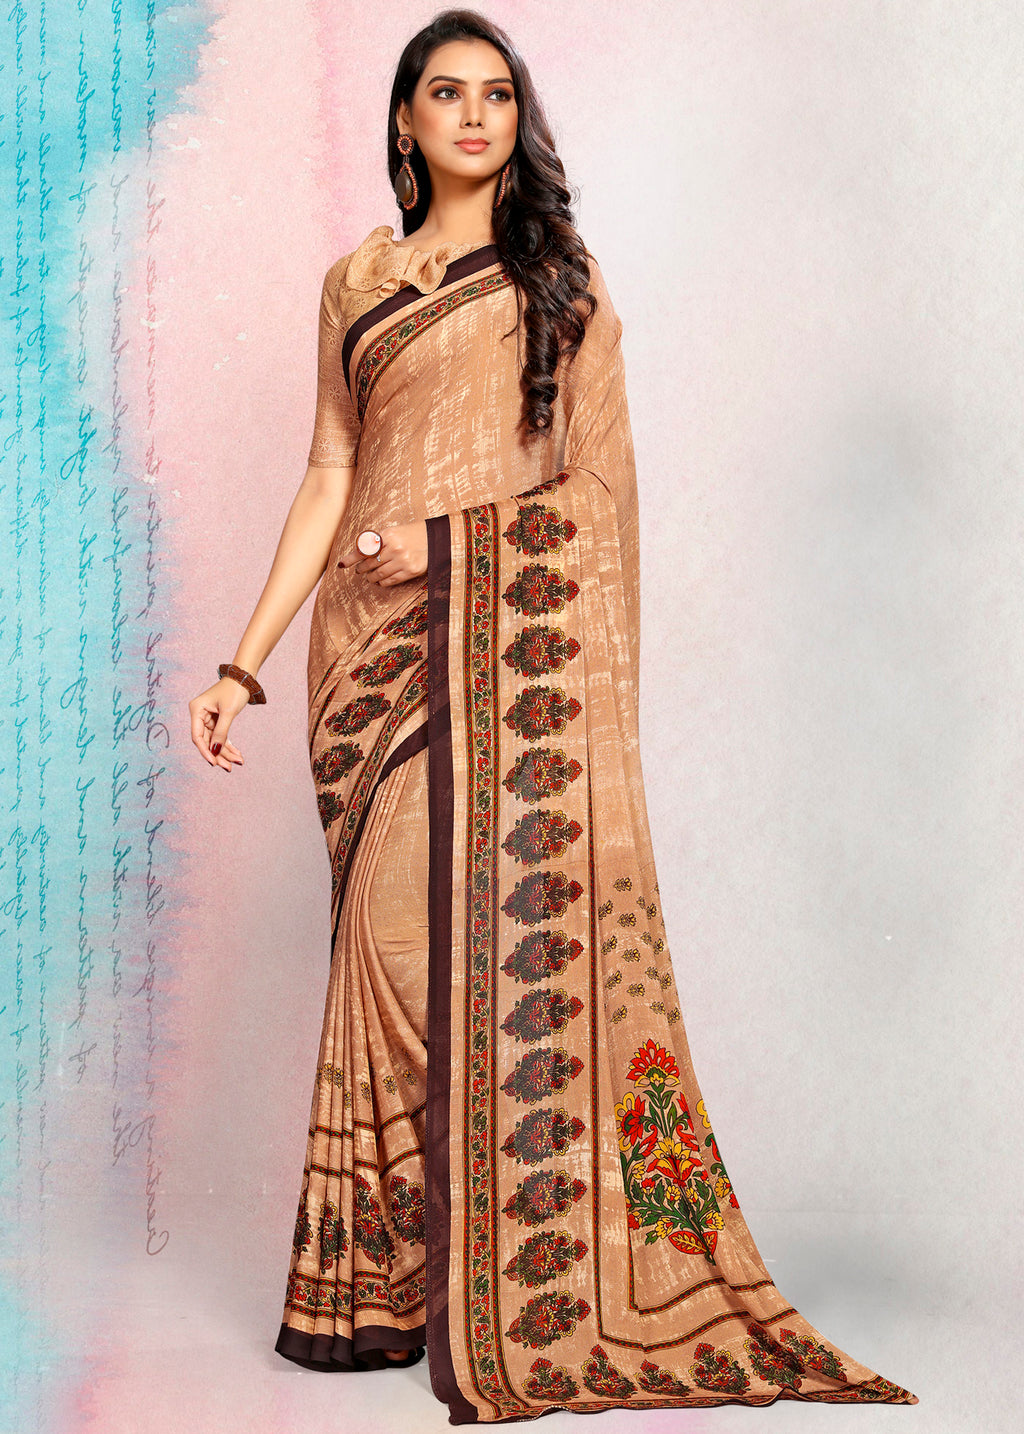 Beige Color Crepe Printed Kitty Party Sarees NYF-9495